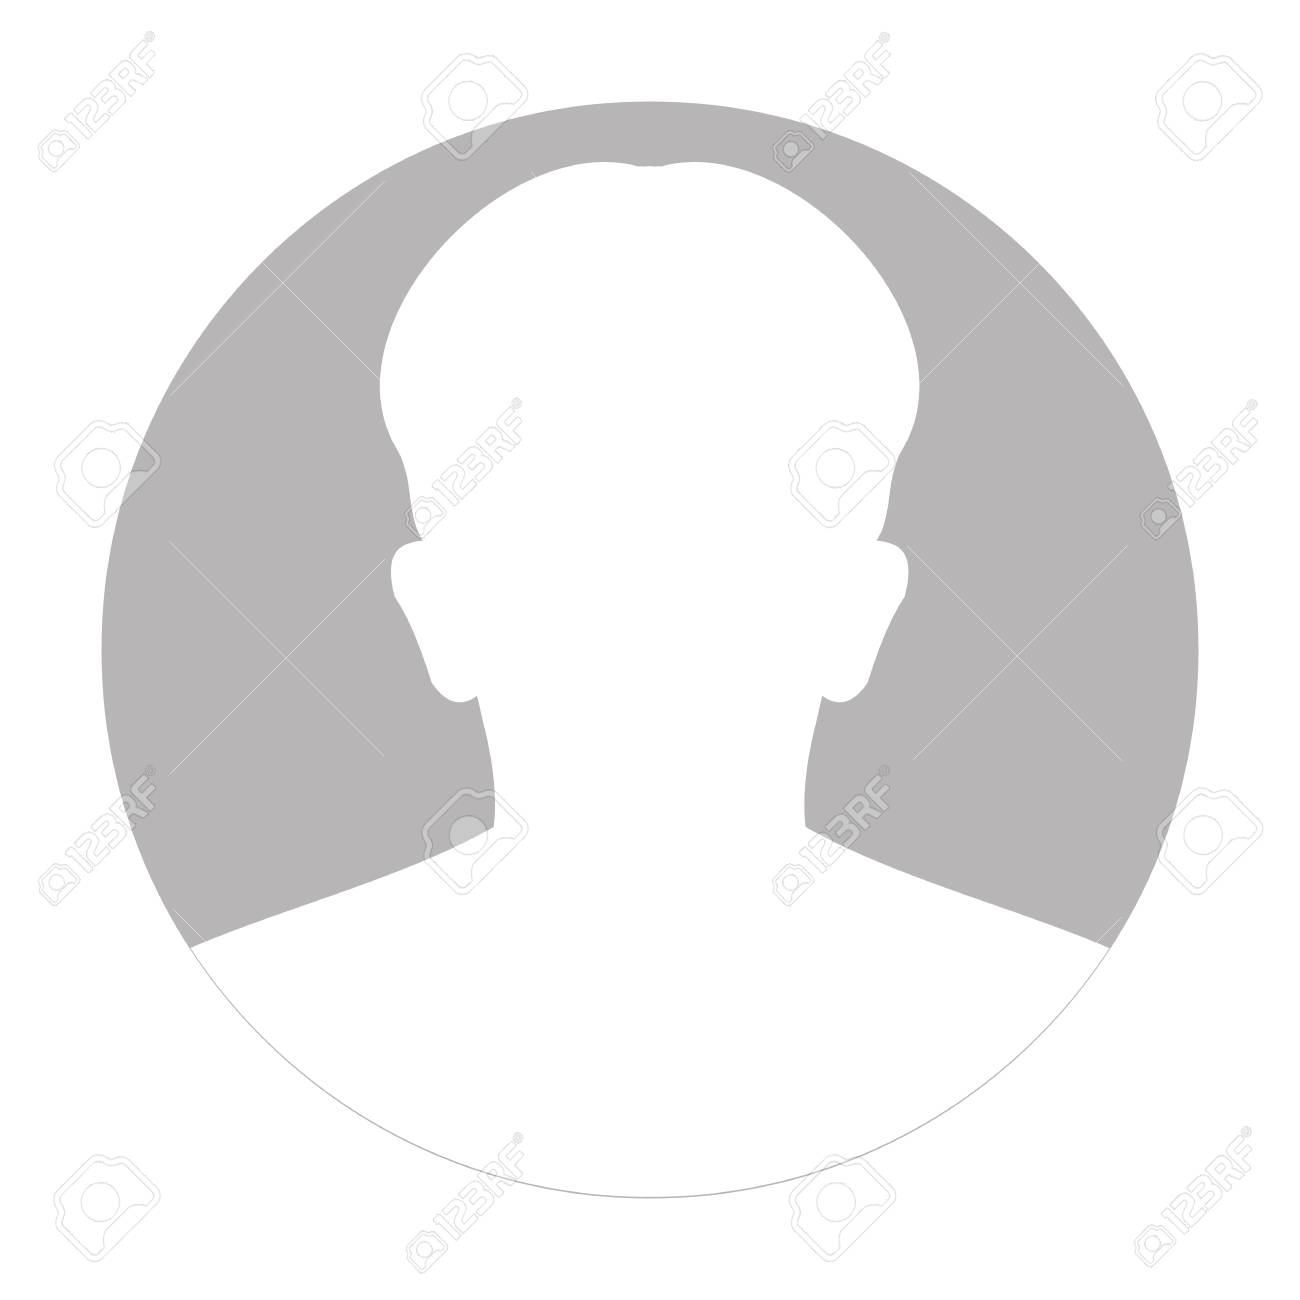 Profile anonymous face icon. Gray silhouette person. Male default avatar. Photo placeholder. Isolated on white background. Vector illustration - 92979836